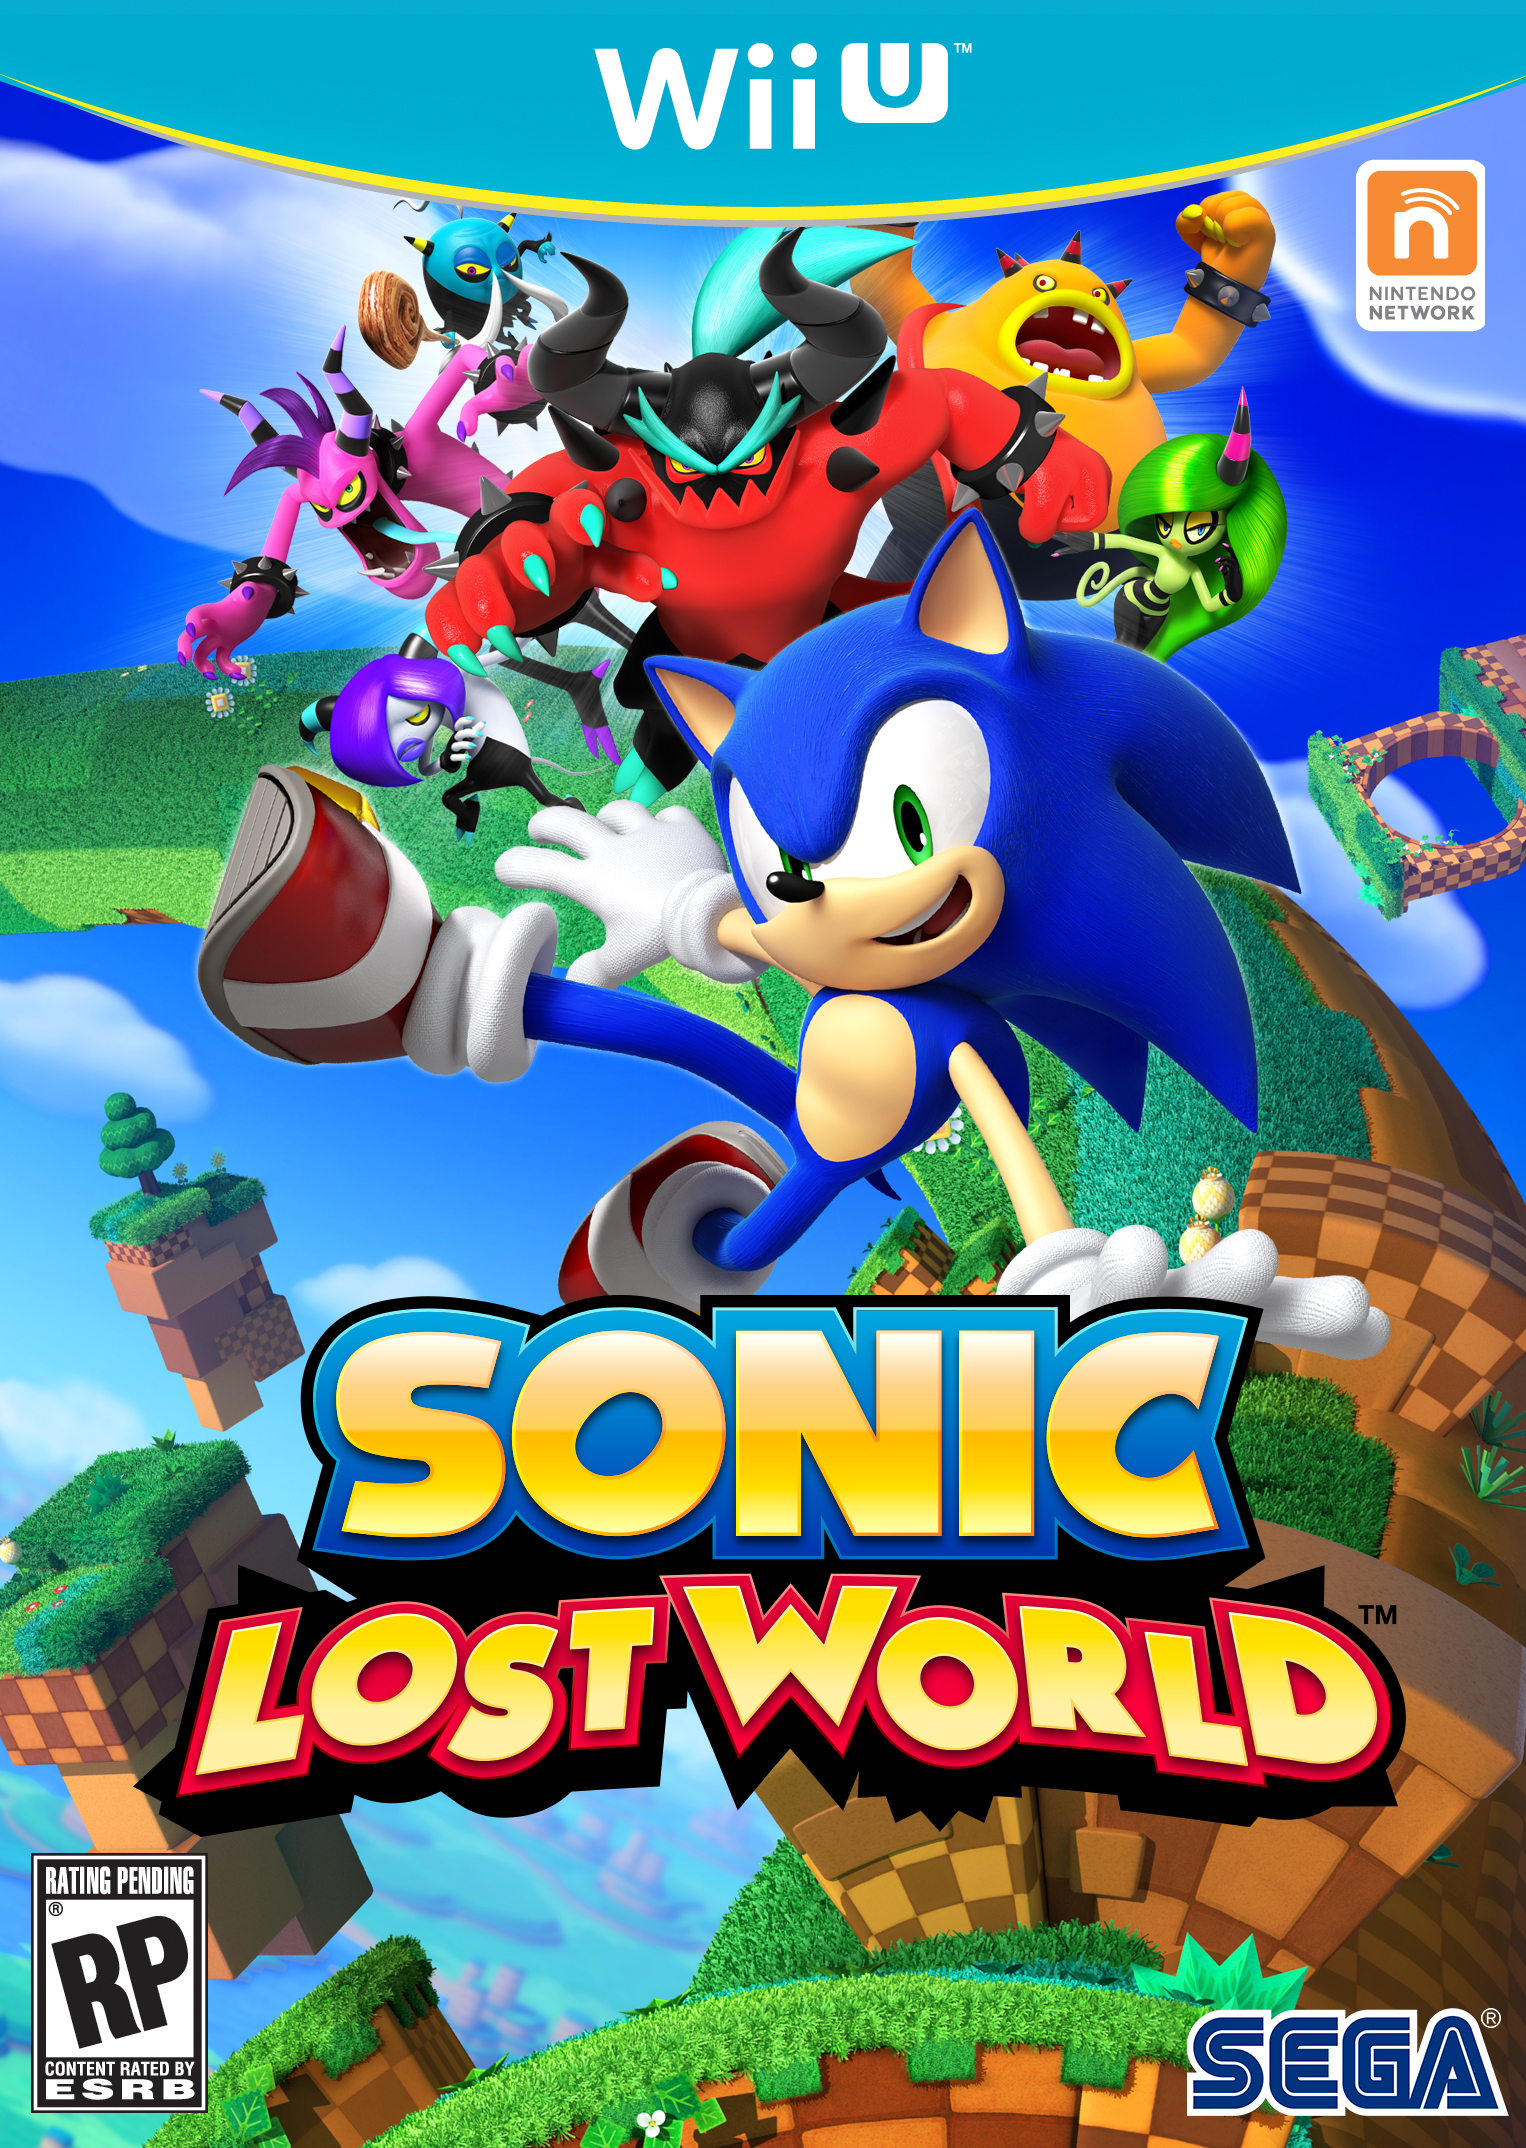 Sonic Lost World Official Box Art Wii U Games And Software Wii